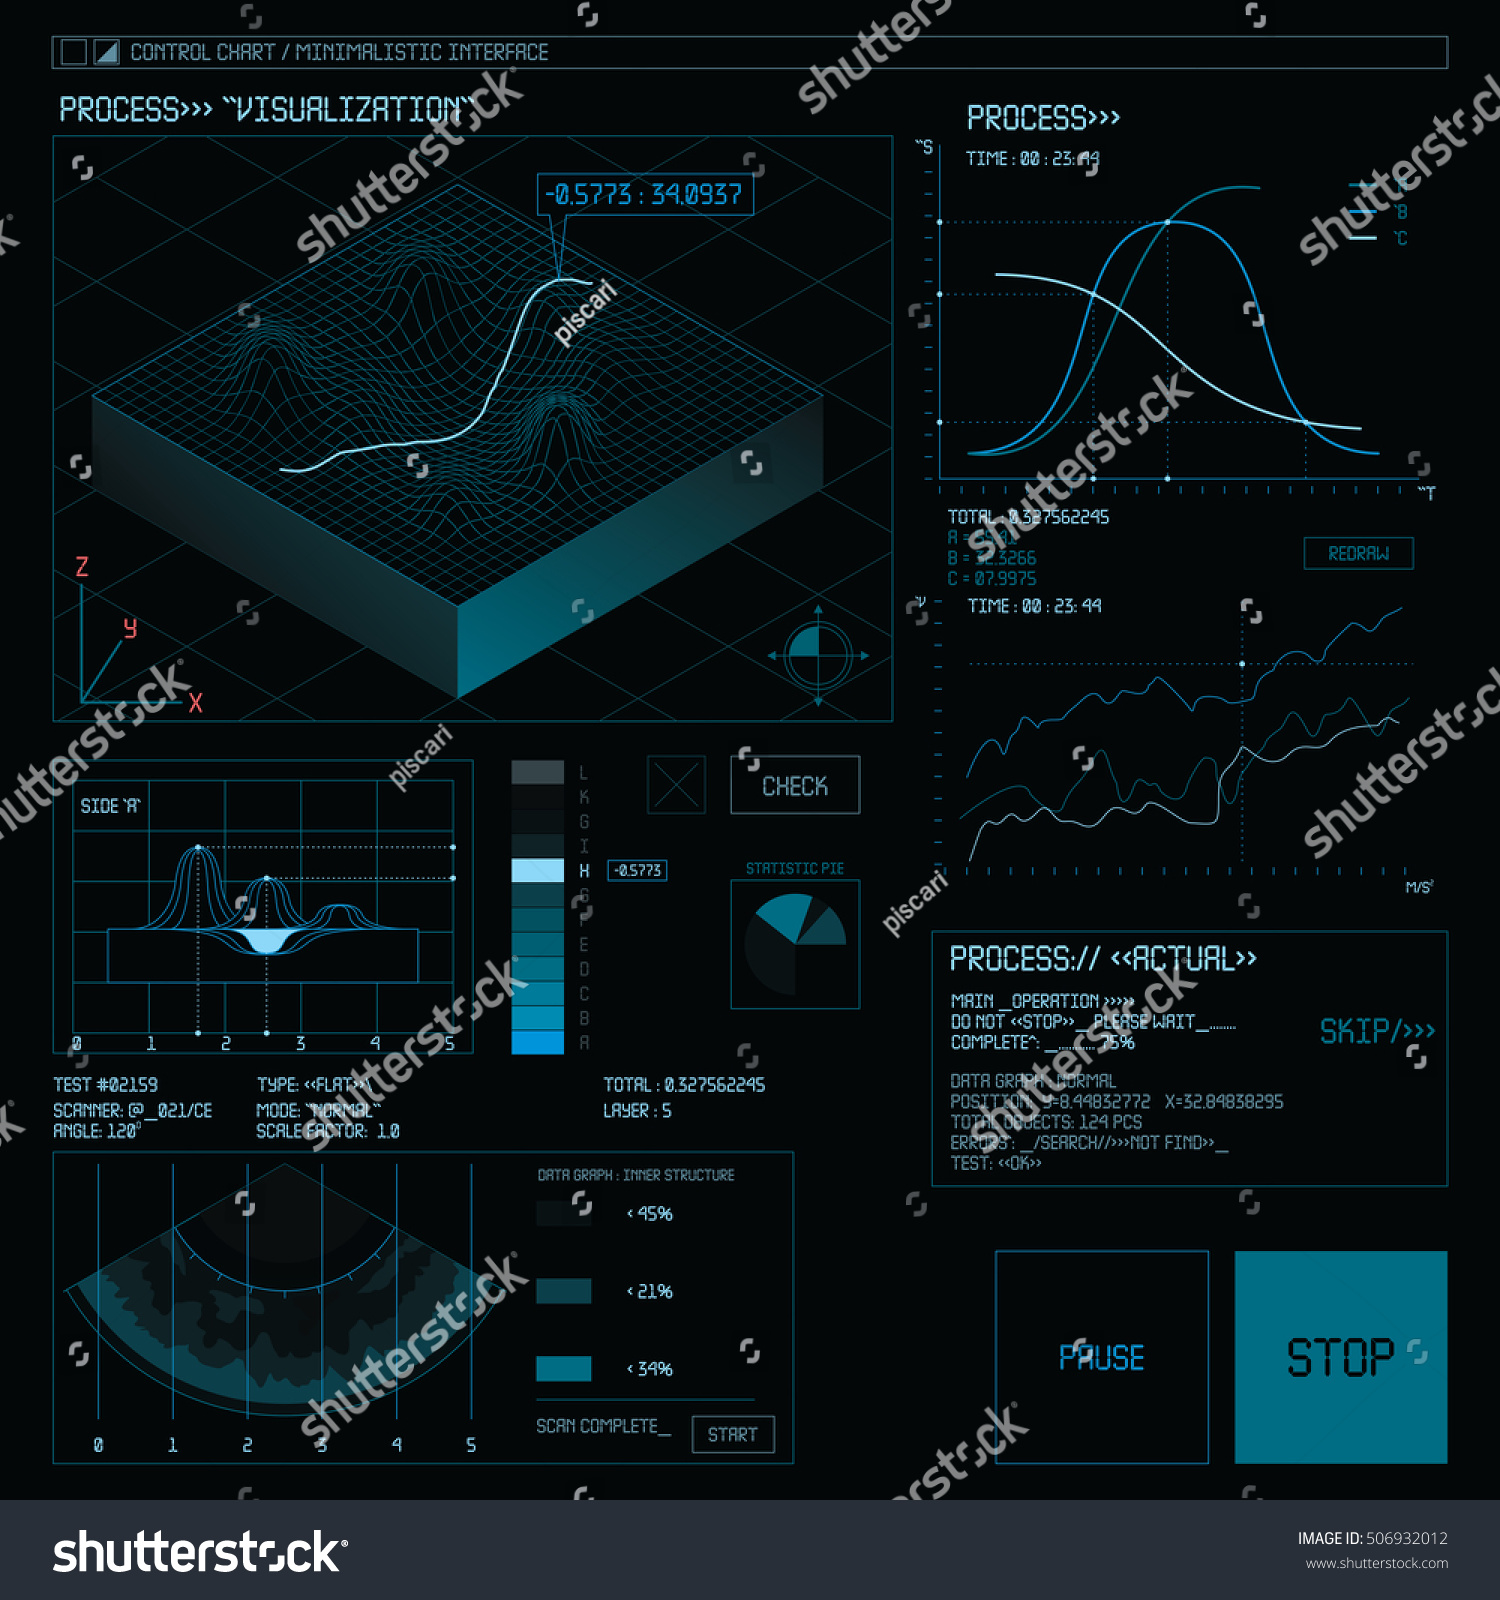 graphical user interface design document template